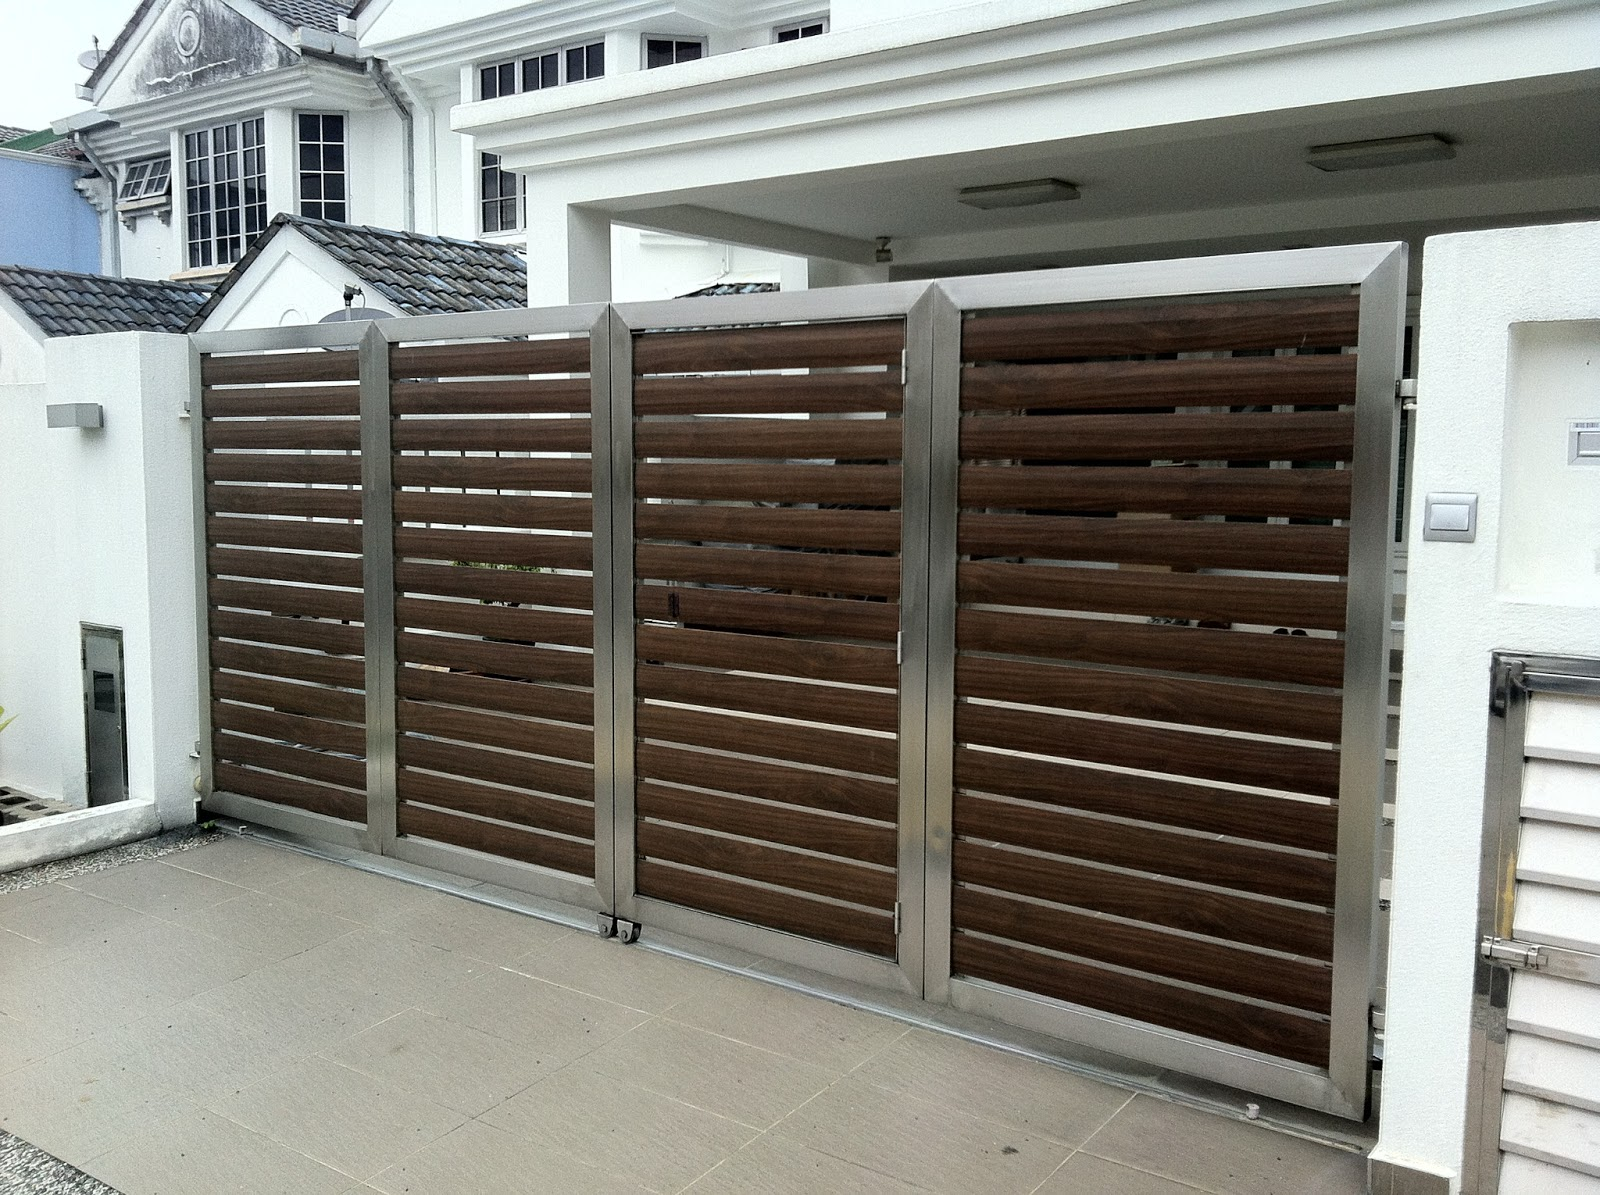 Lkn one stop centre gates stainless steel